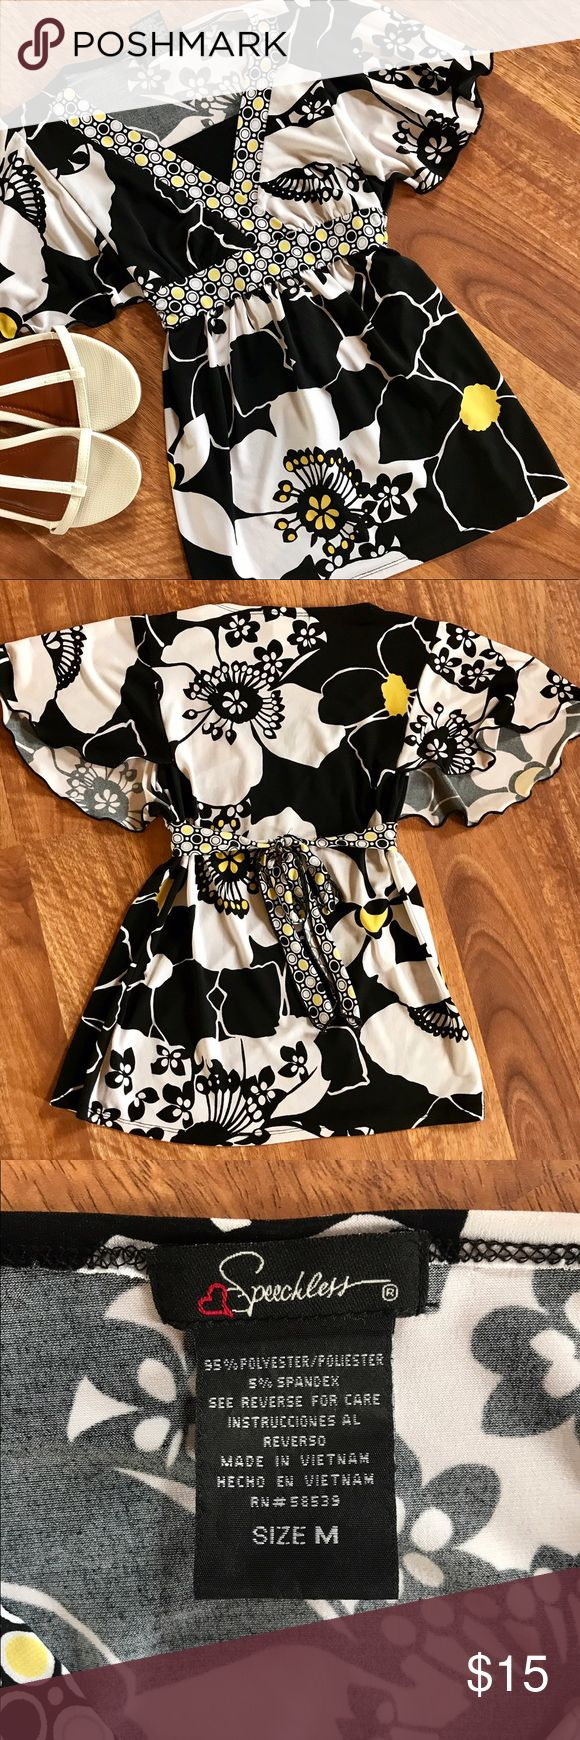 🌻{Speechless} Girl's Flowy Fancy Top Girl's size M Speechless brand yellow/black/white floral w/ polka dots fancy shirt in excellent used condition with no flaws! Features batwing sleeves, waist tie, and black attached panel. Smoke-free home, as always. Bundle and save!!! ***Shoes not included. Speechless Shirts & Tops